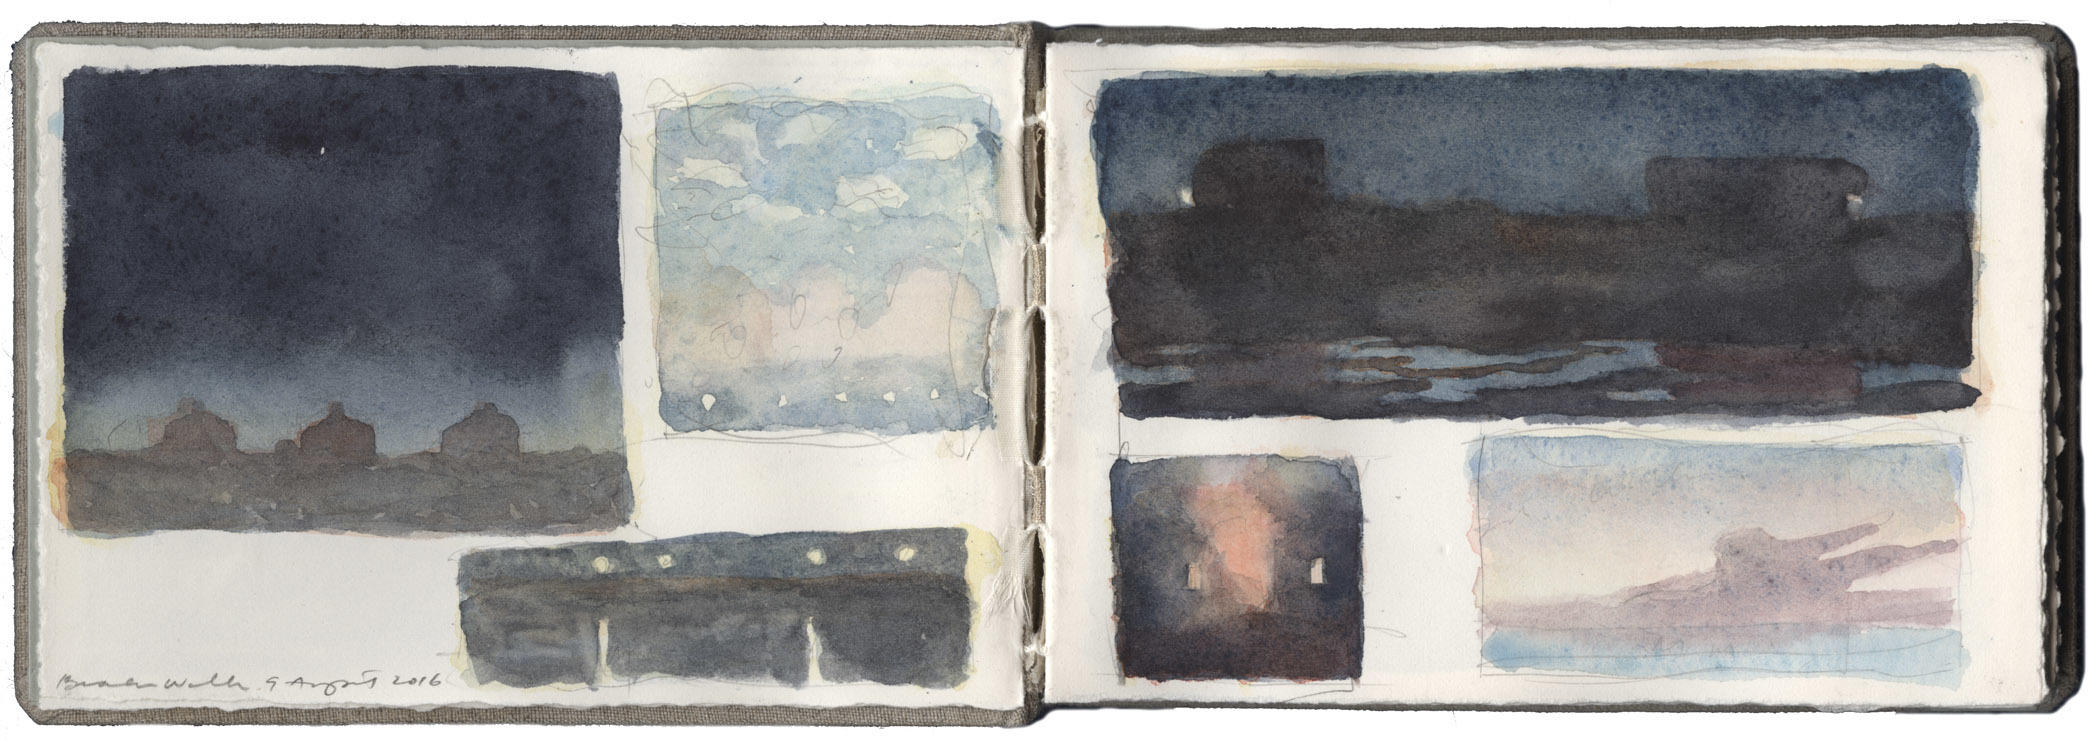 Studies from a Beach Walk image